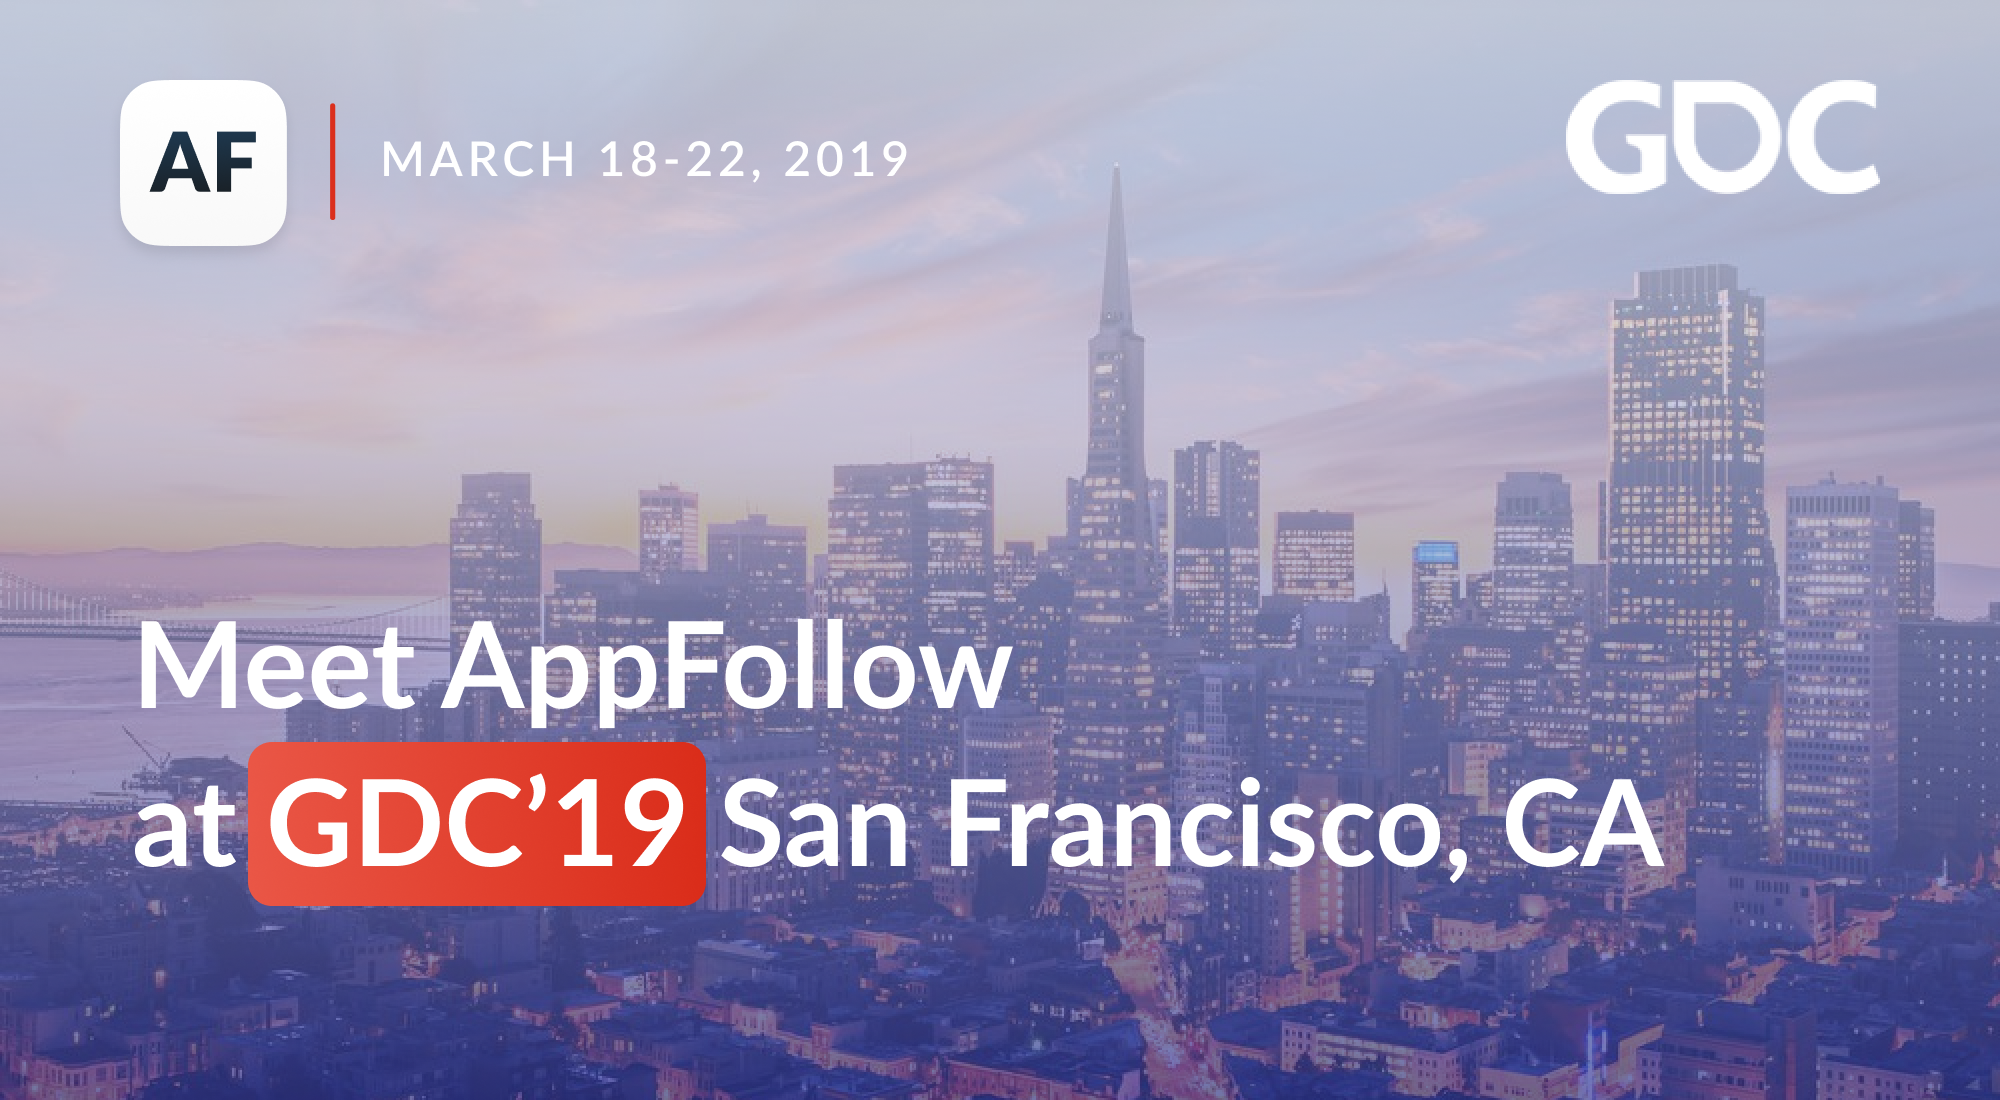 Meet AppFollow at GDC 2019